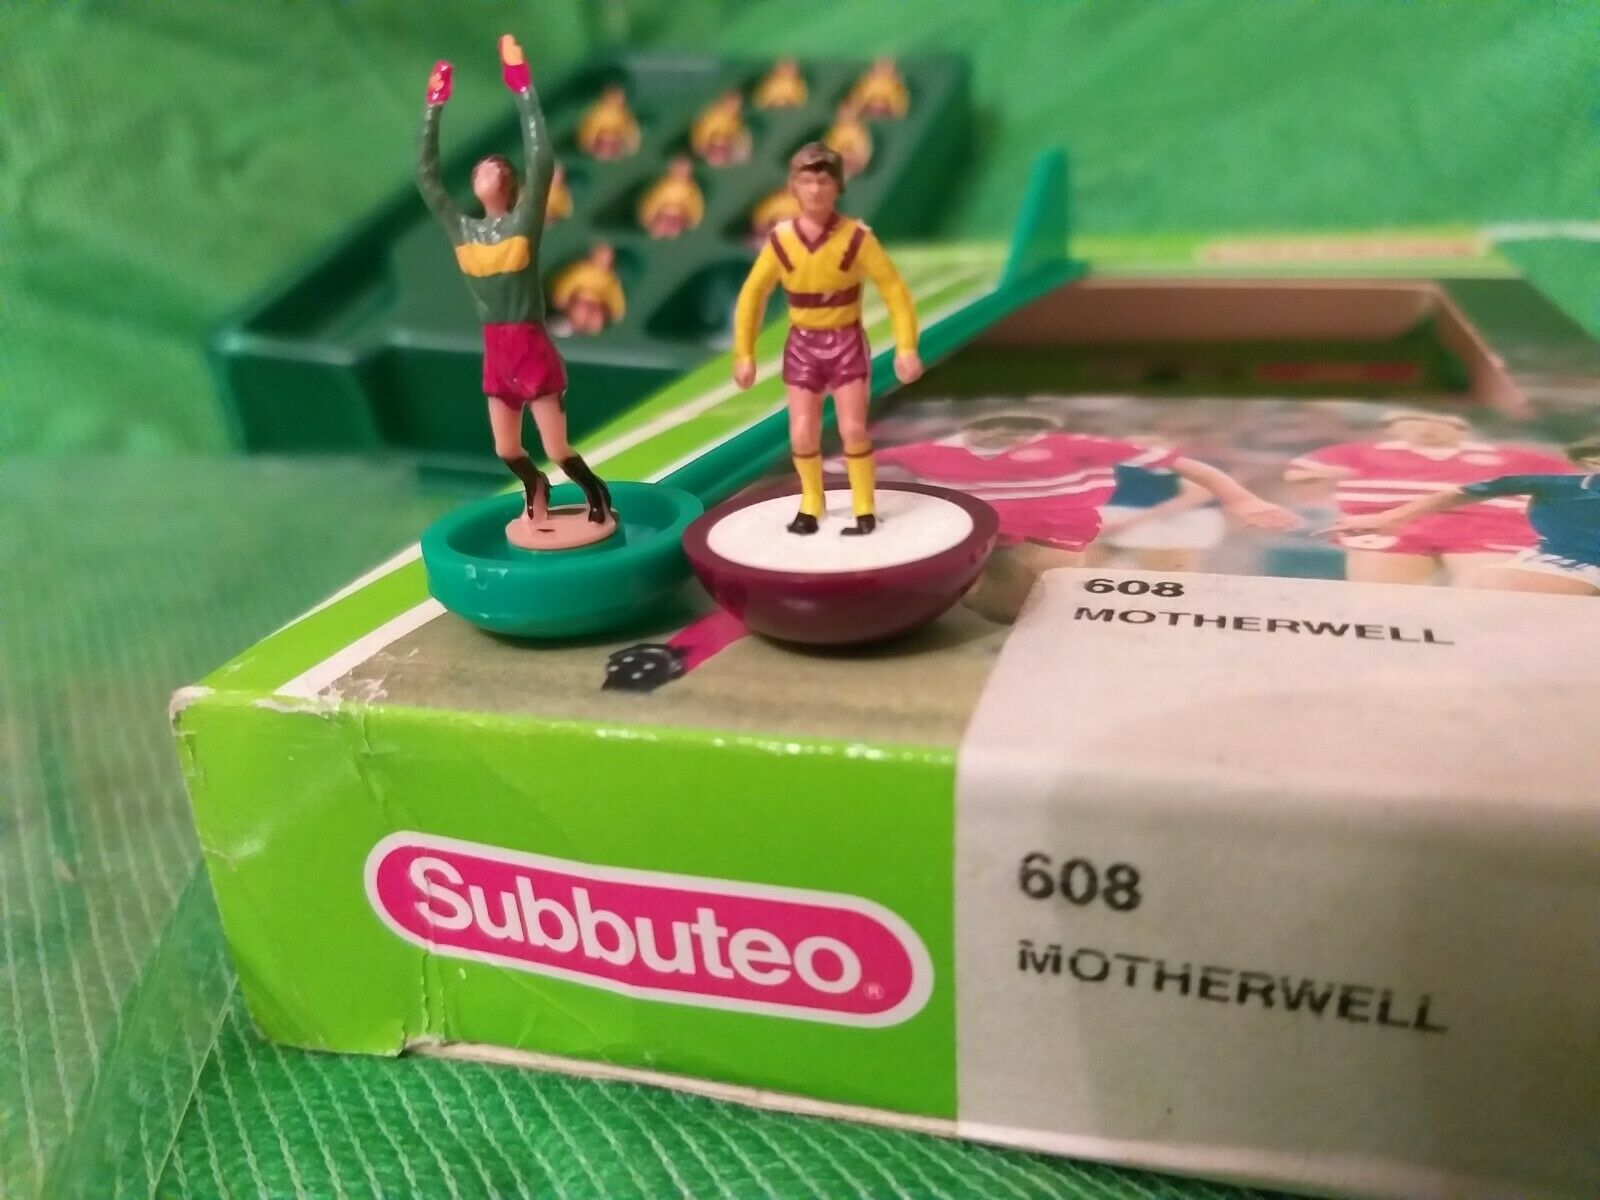 LW SUBBUTEO TEAM MOTHERWELL REF 608 IN EXCELENT CONDITION VERY RARE